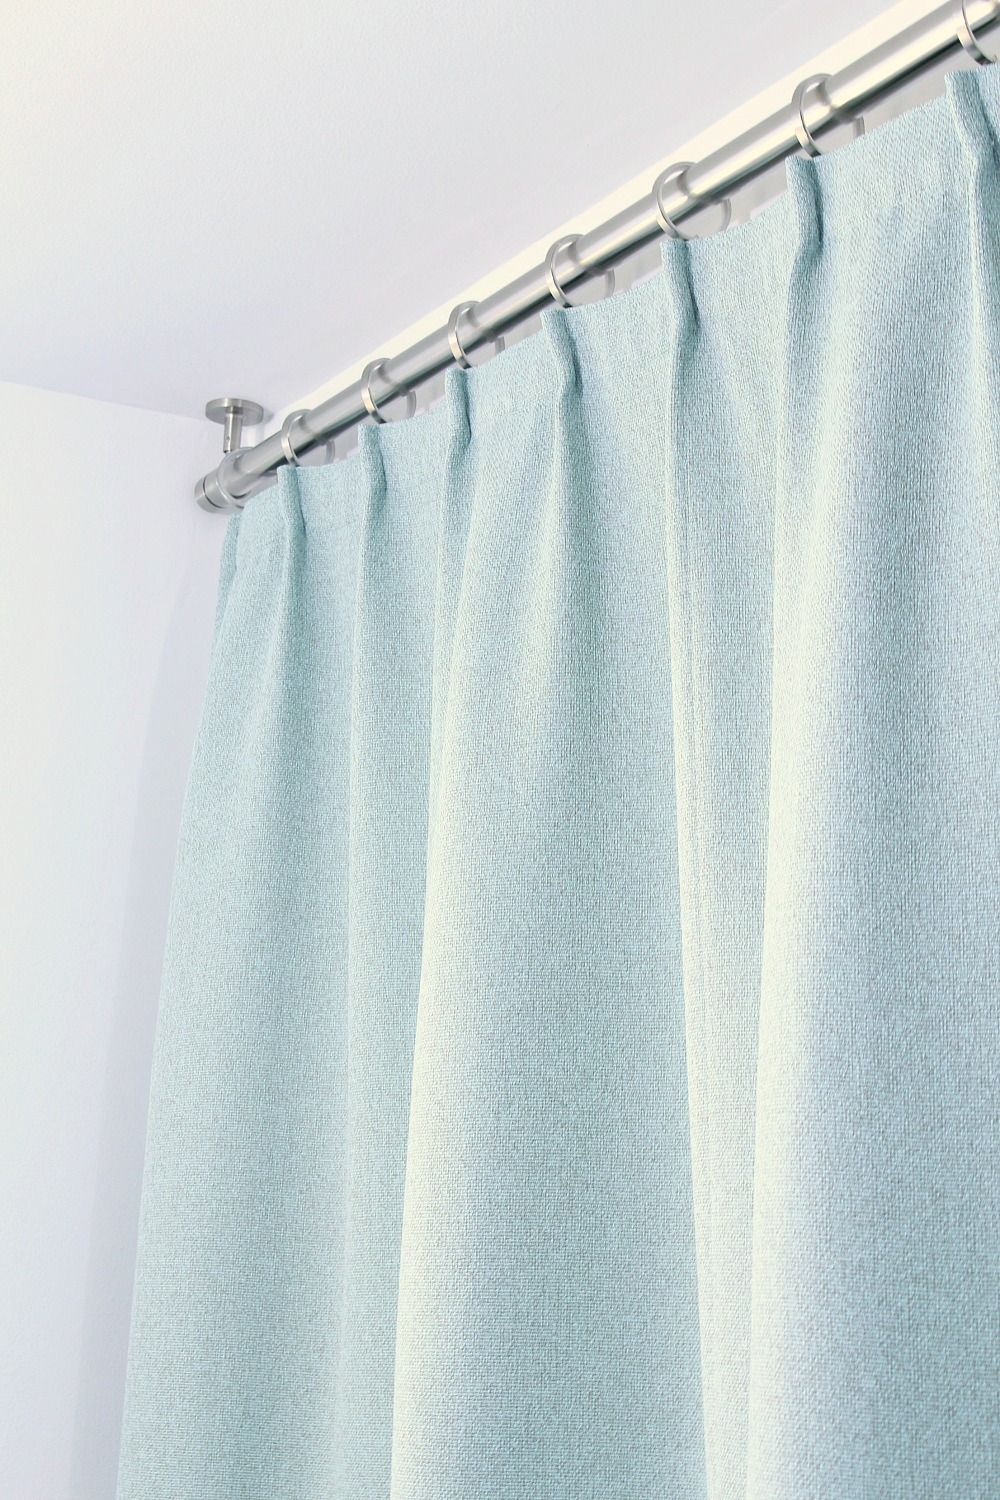 Bathroom Update Ceiling Mounted Shower Curtain Rod Turquoise